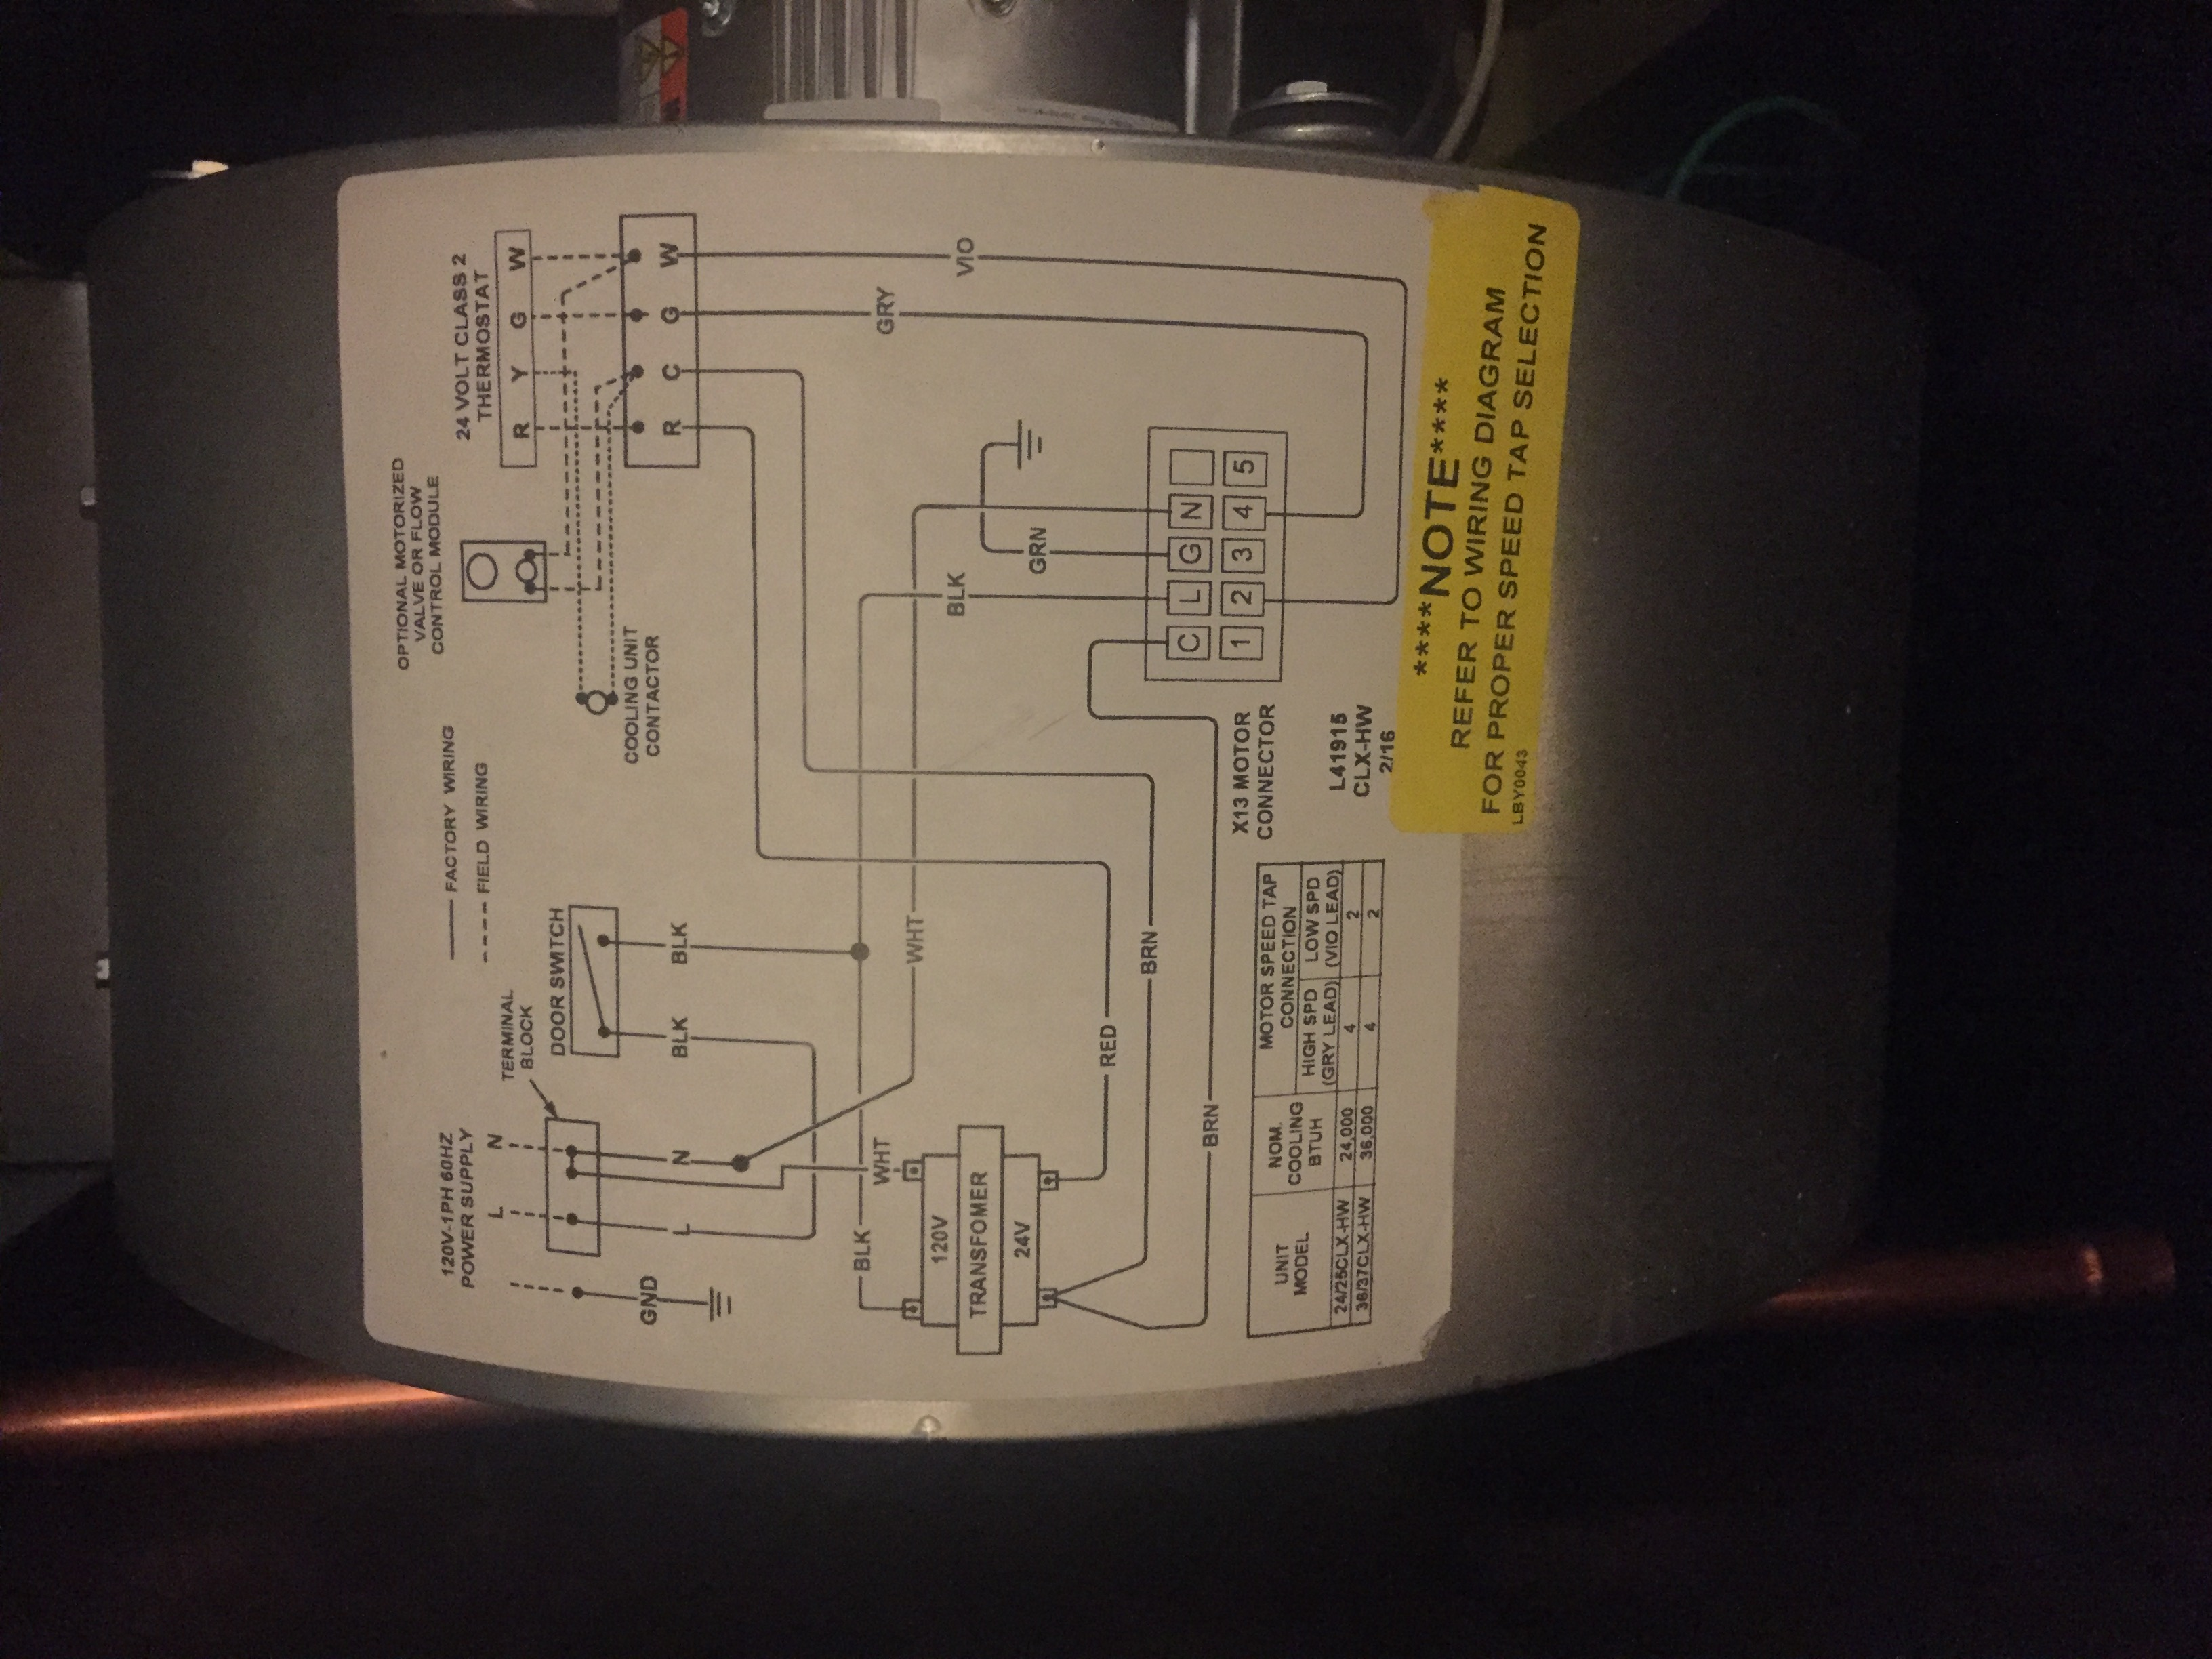 I Am A Home Owner Replaced Heating System In My House With Hydro Nest 2 Stage Thermostat Wiring Diagram Img 5522